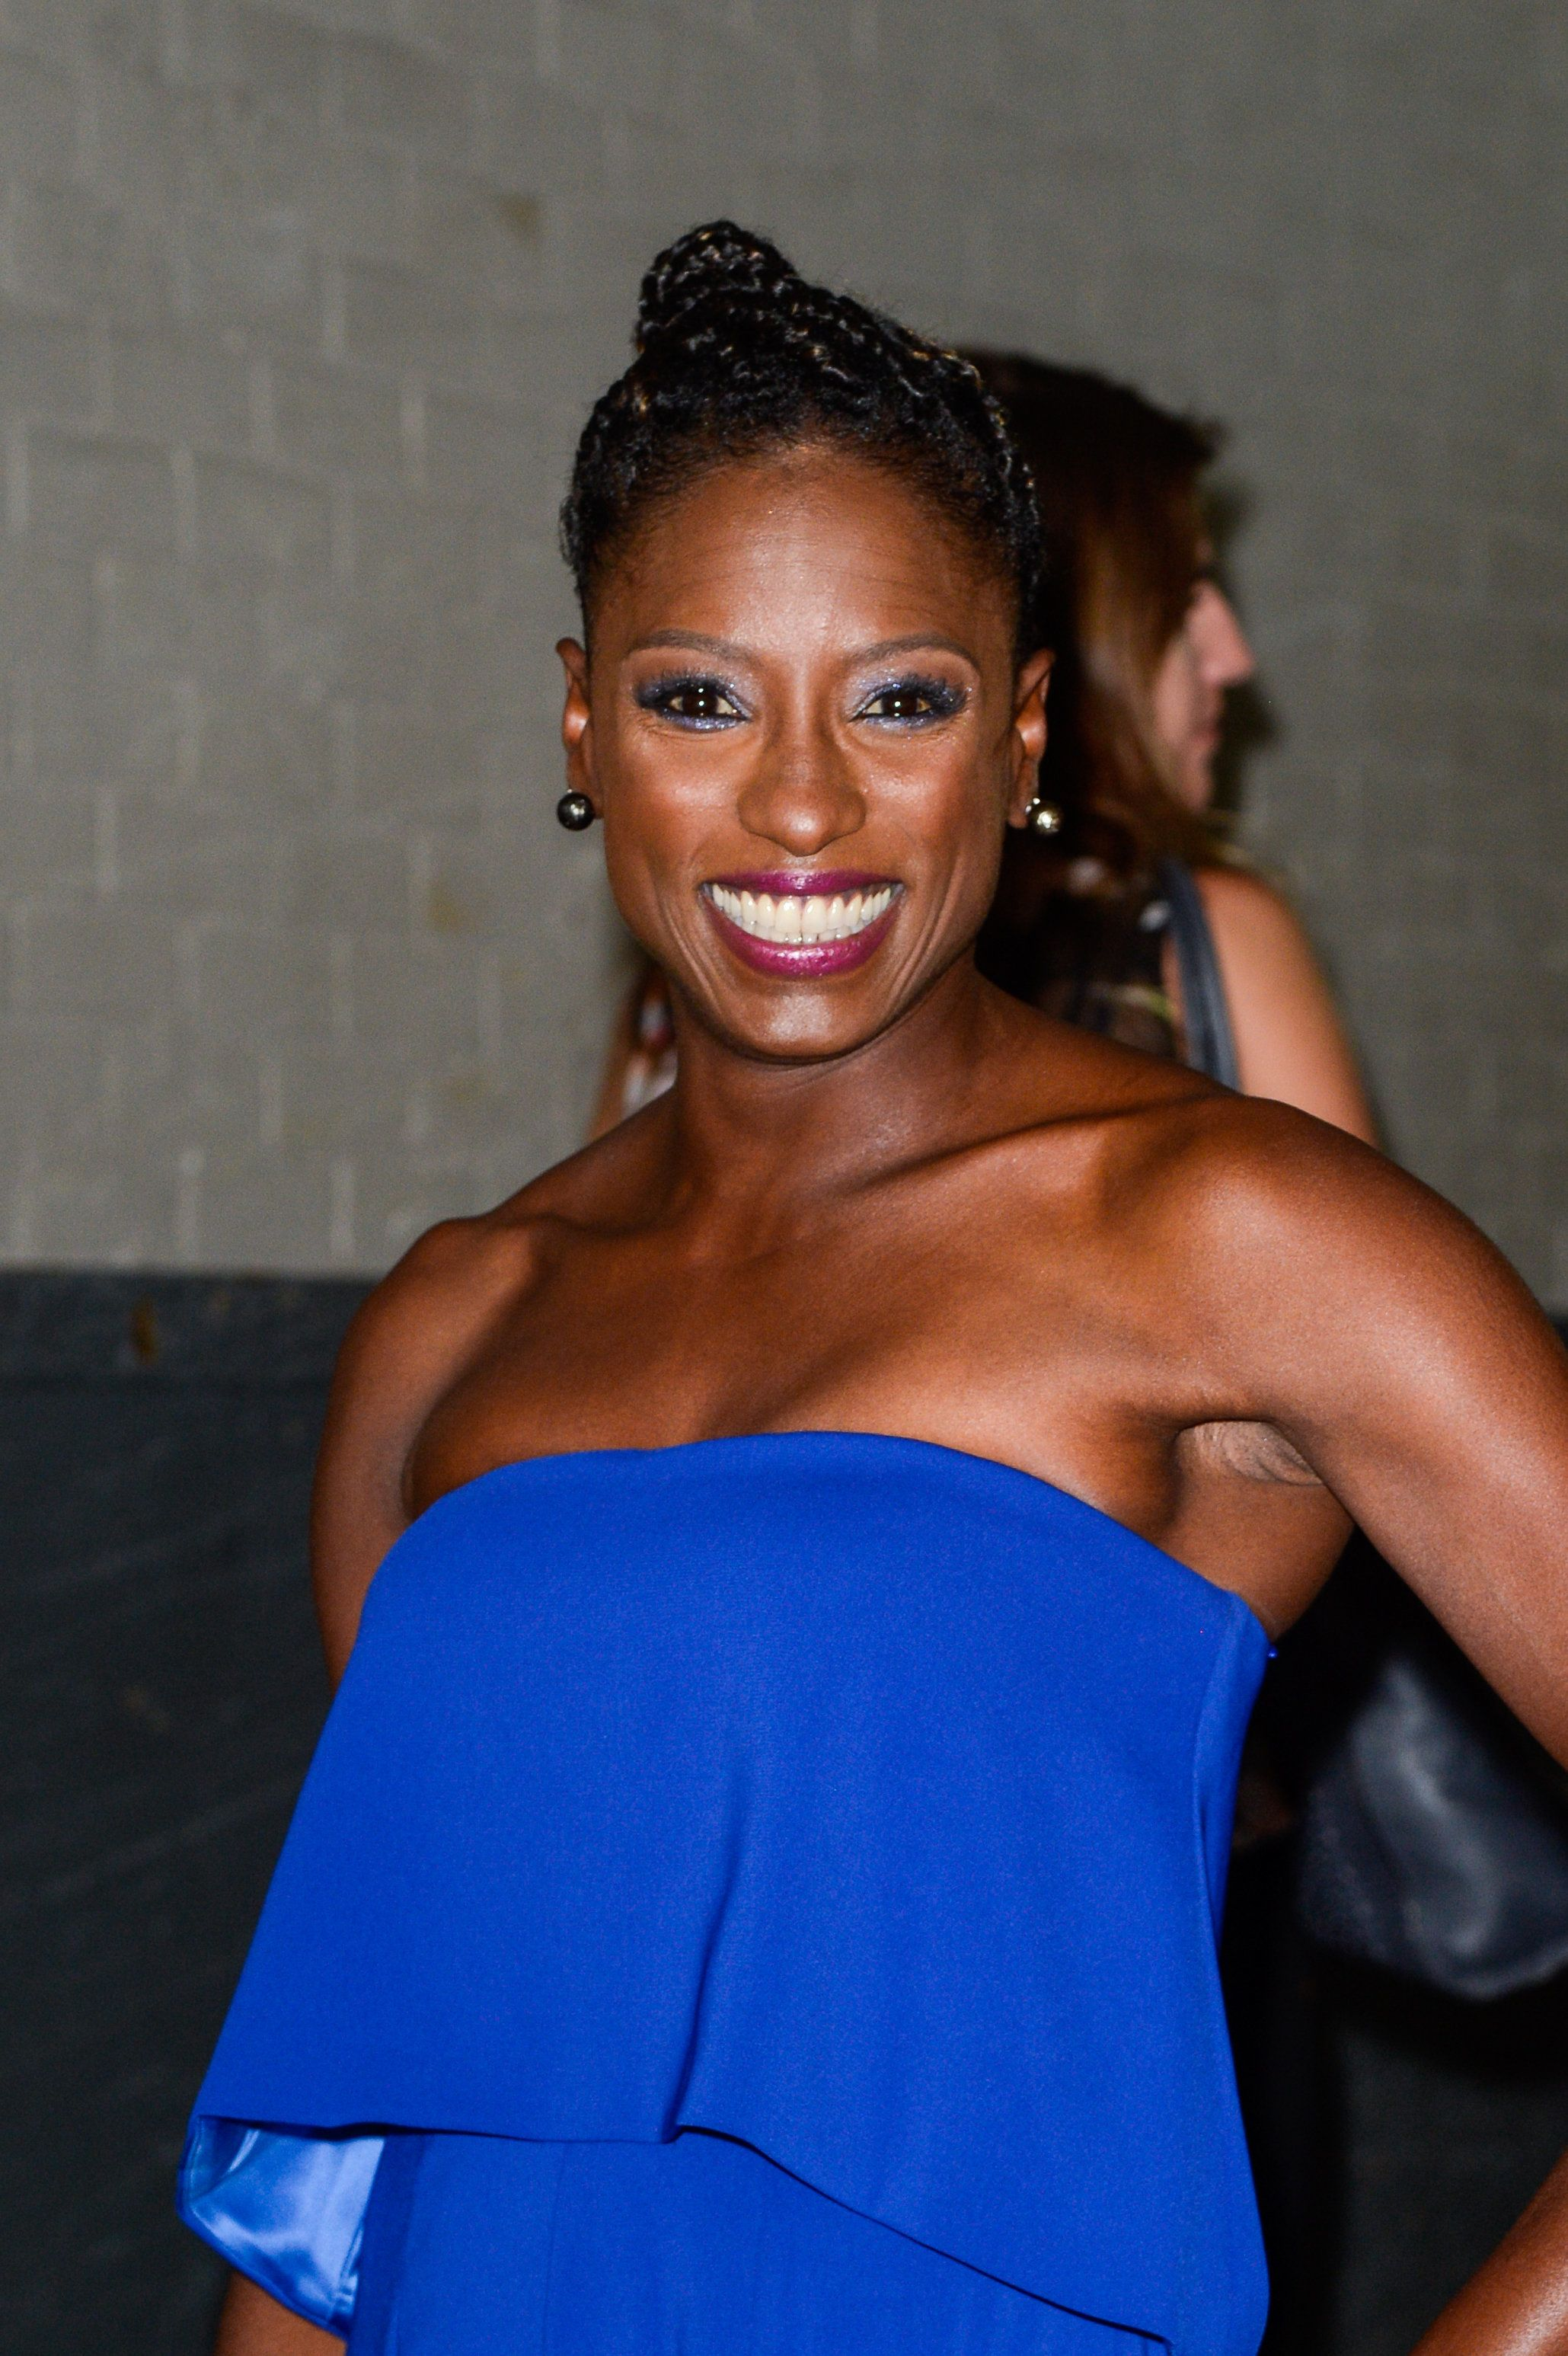 NEW YORK, NY - SEPTEMBER 06:  Actress Rutina Wesley enters the 'AOL Build' taping at the AOL Studios on September 06, 2016 in New York City.  (Photo by Ray Tamarra/GC Images)